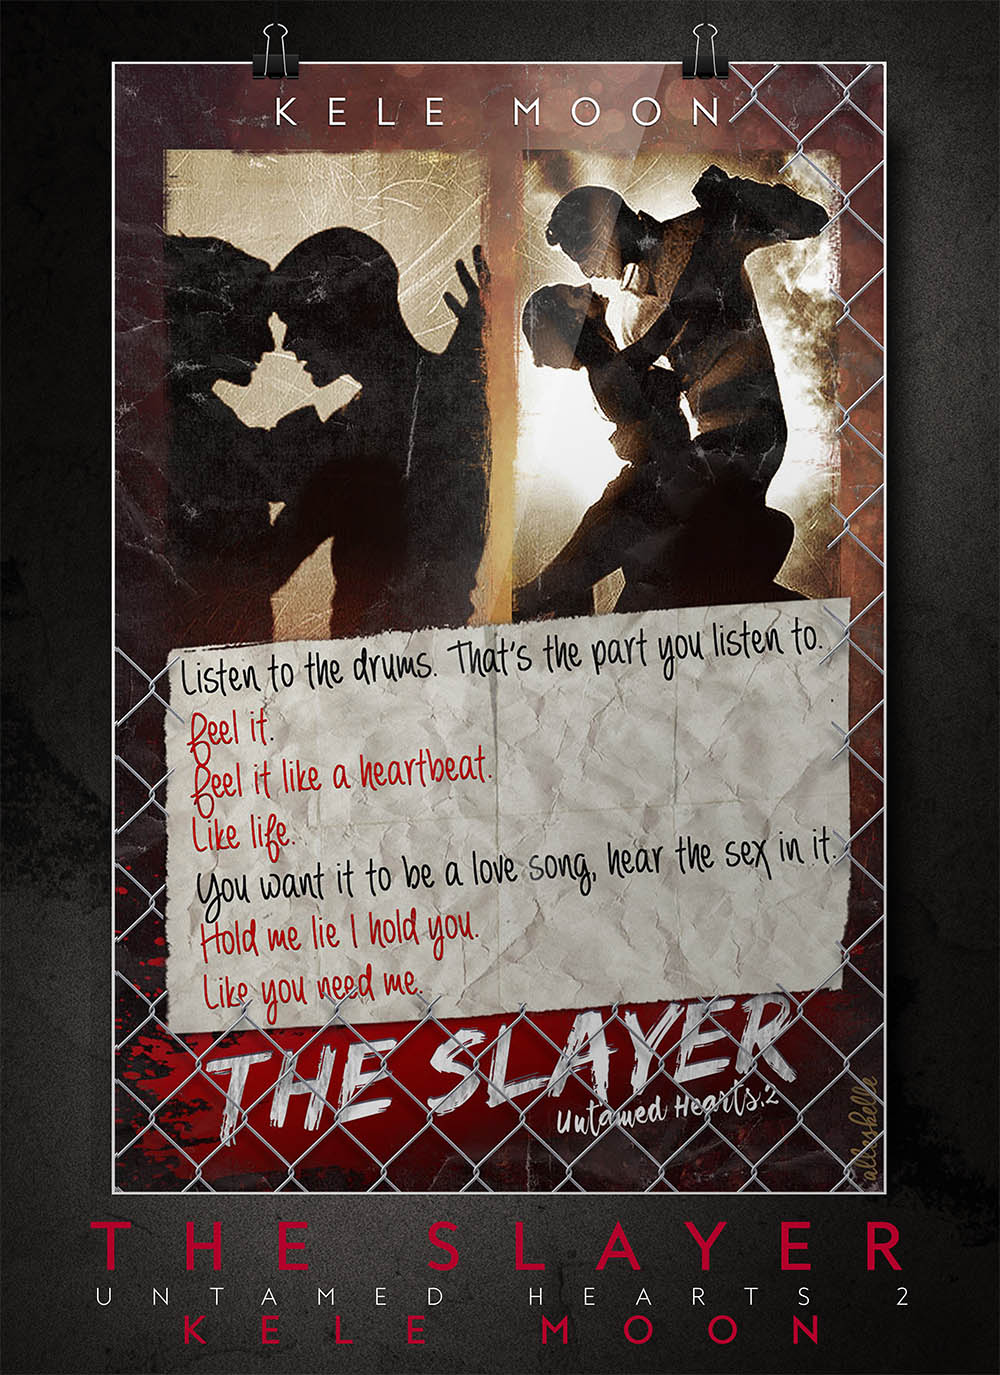 slayer_alleskelle_11_a